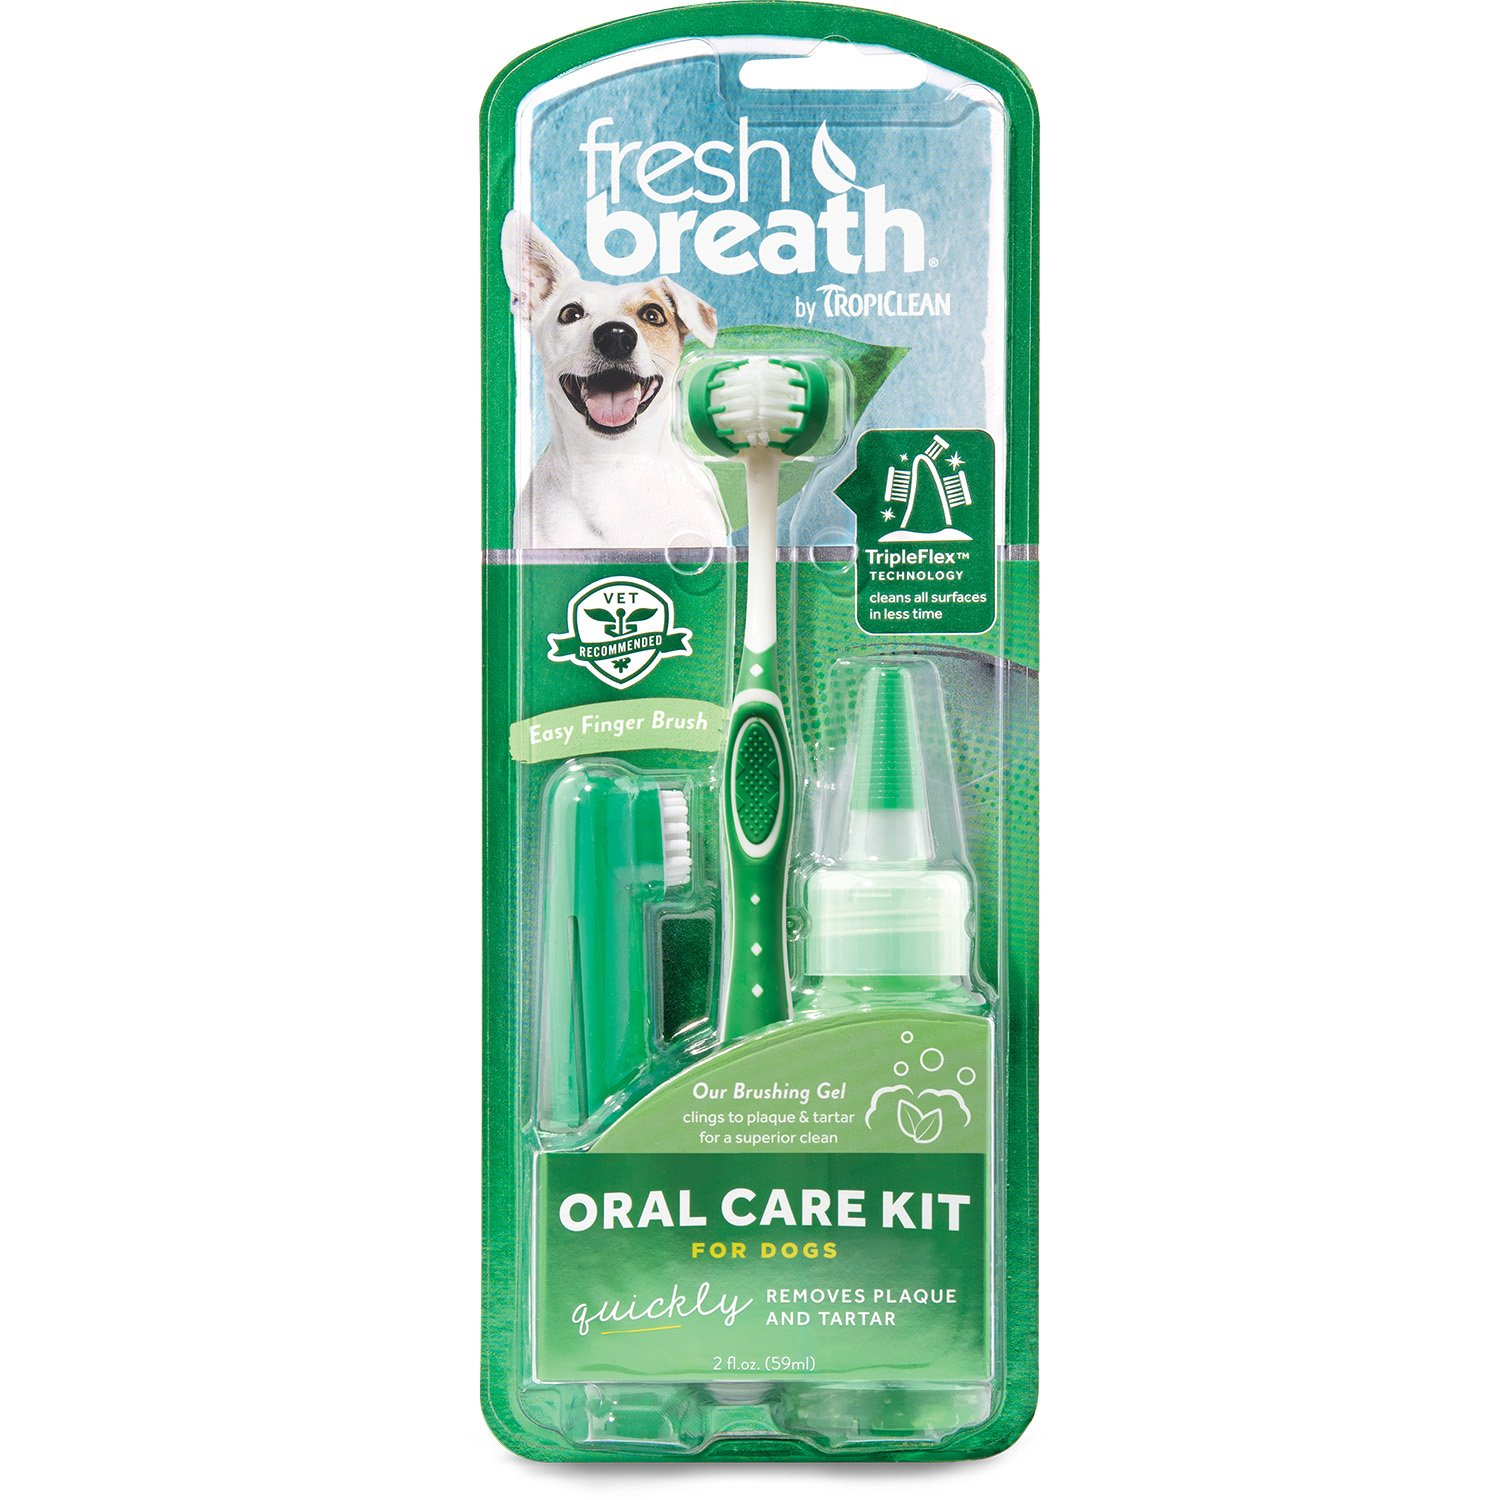 Tropiclean Fresh Breath Dental Care Kit For Large Dogs, 2 oz. Gel and Triple-Flex Toothbrush Included